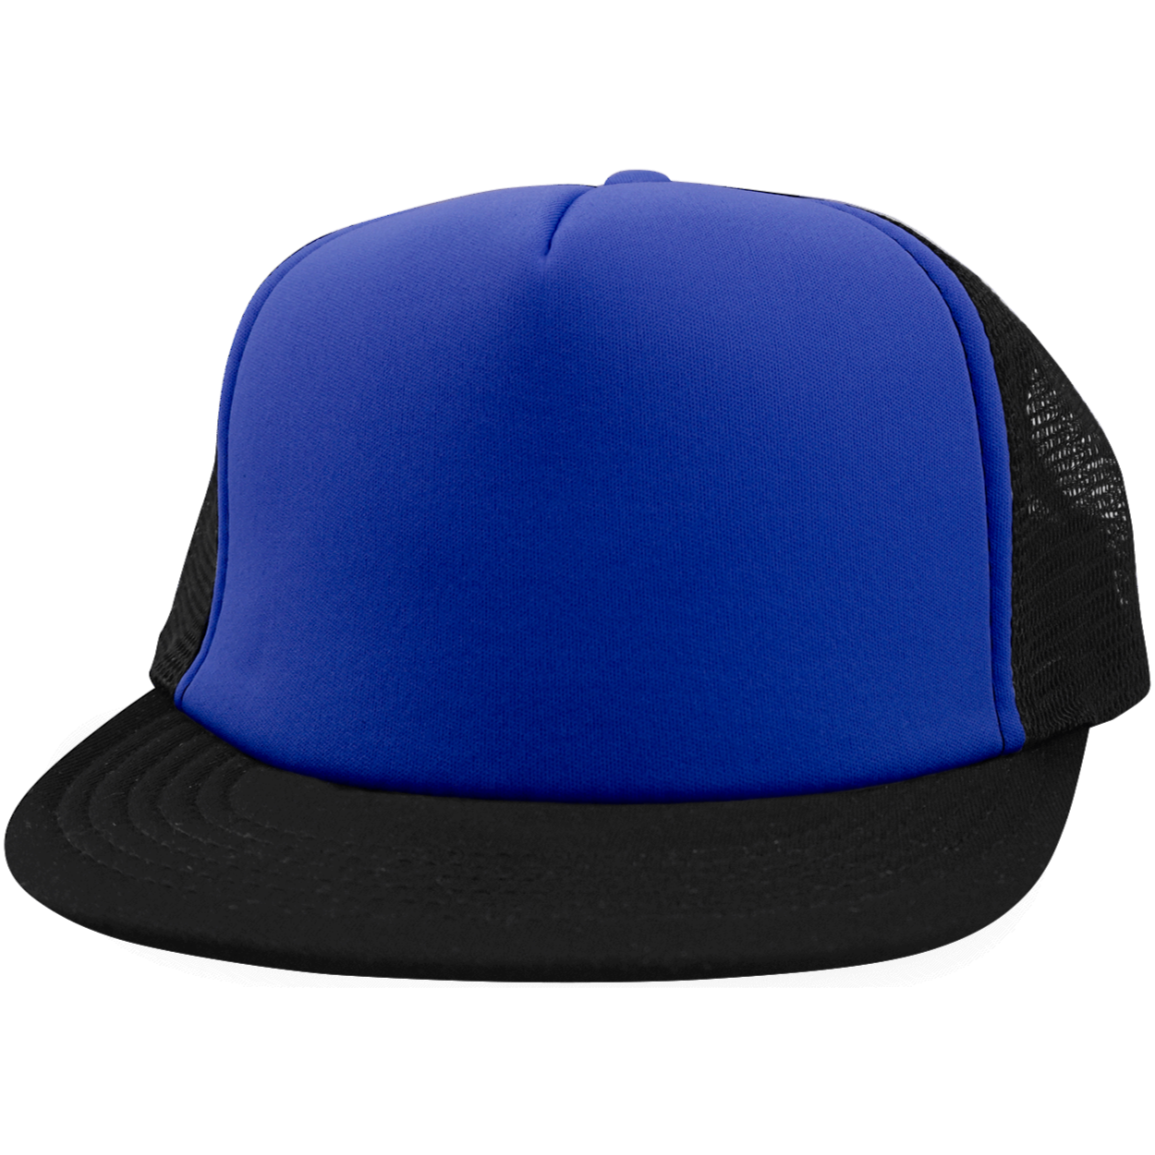 6c8f1b096d3be3 Barbers Hill High School Trucker Hat with Snapback - SpiritShop.com